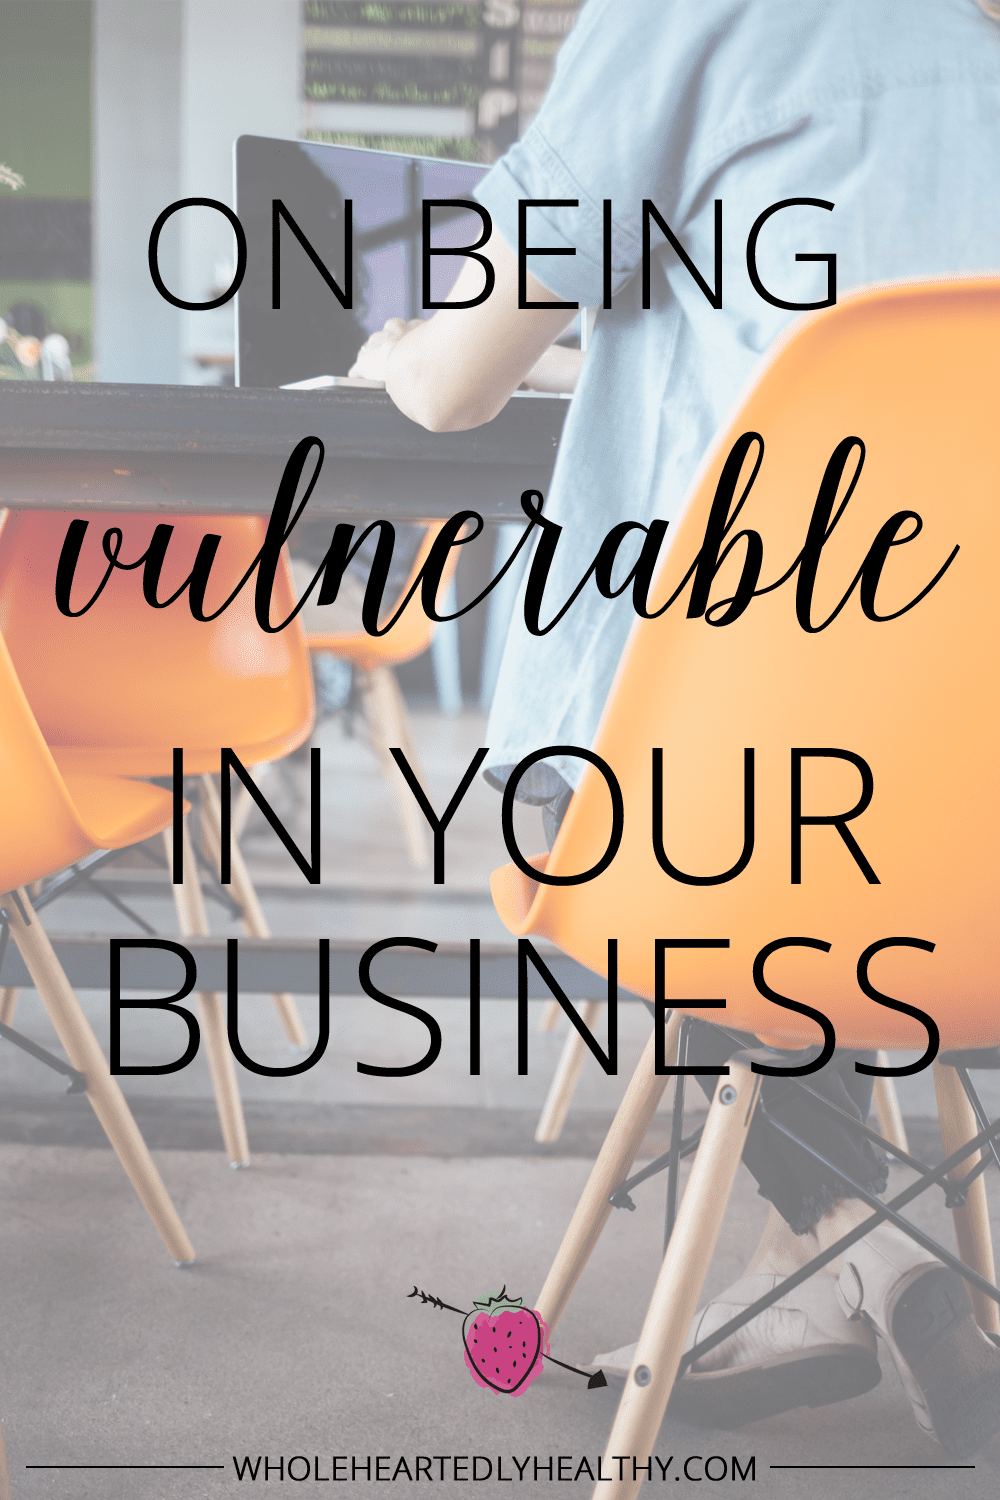 On being vulnerable in your business